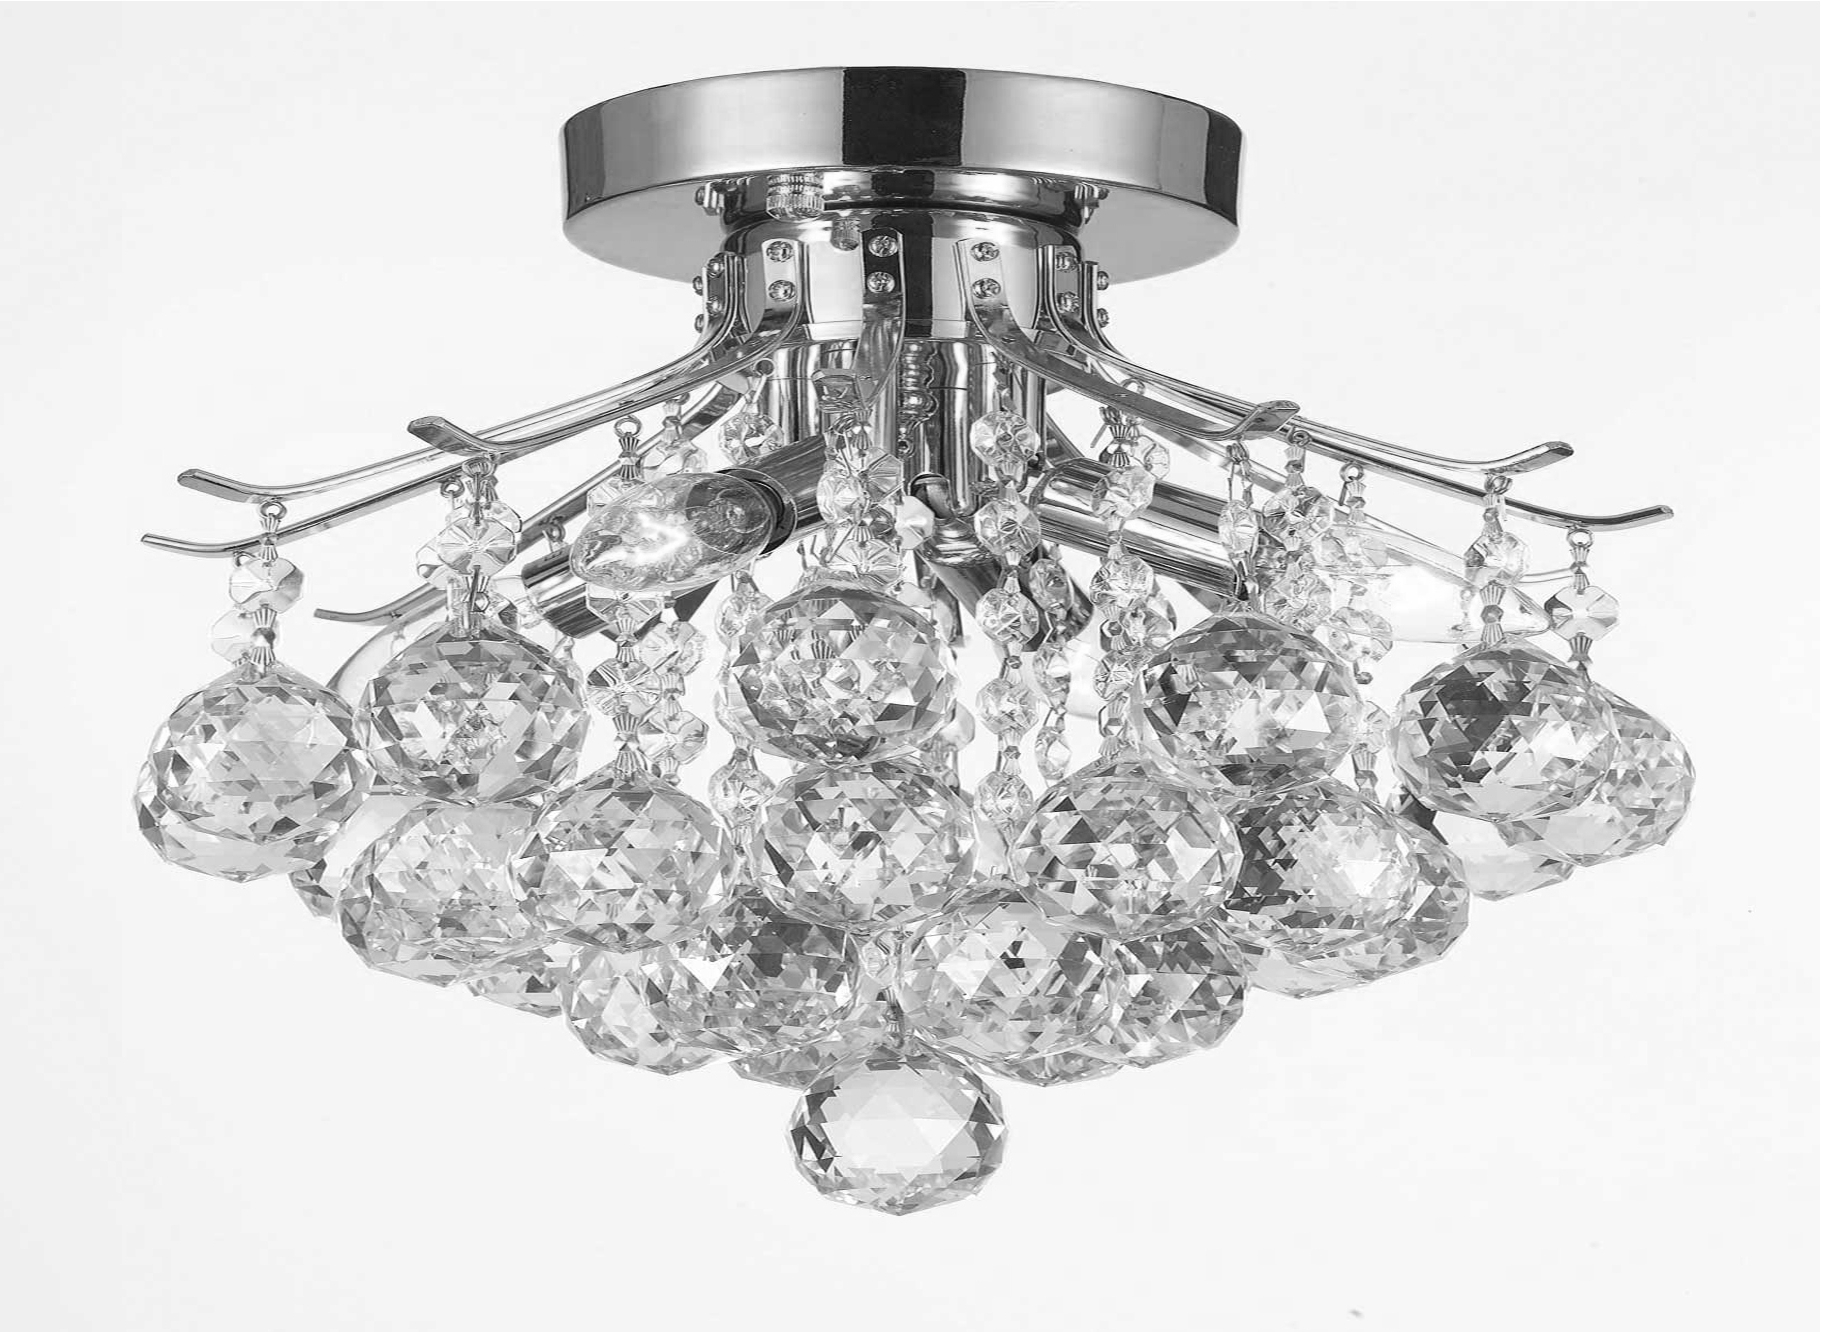 G7 Cs/1132/4 Gallery Empire Style Empire Crystal Chandelier With Most Up To Date Wall Mount Crystal Chandeliers (View 13 of 15)